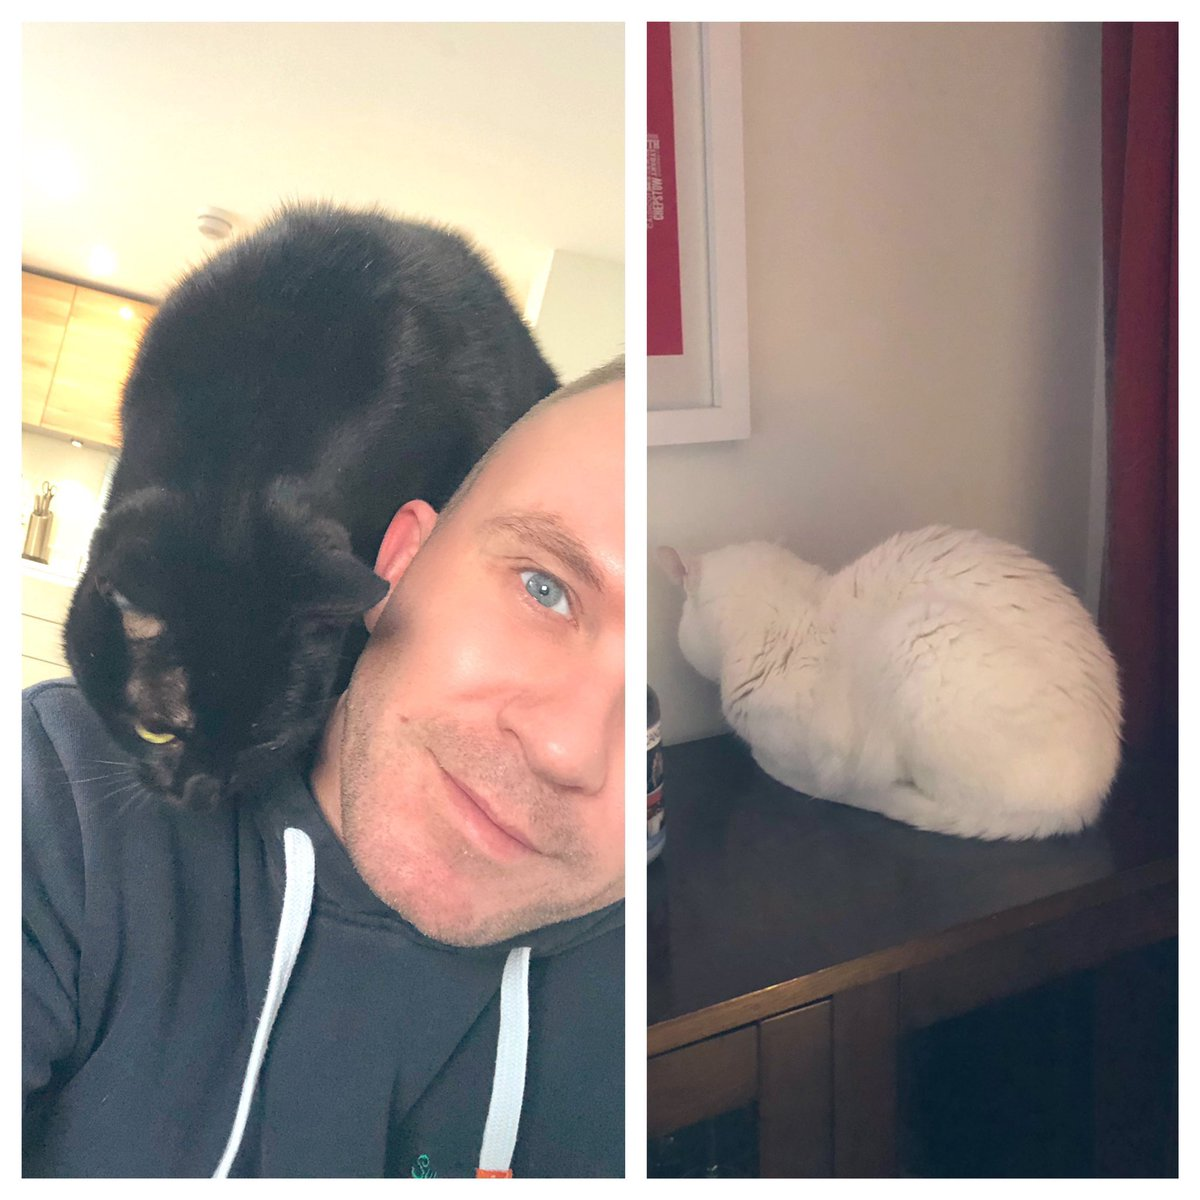 Apparently it's #LoveYourPetsDay so here's my two rescue #CatsOfTwitter - Peddie who thinks he's a parrot and Colin who faceplants into walls! What's not to love? They're weird and wonderful just like me and their other daddy!